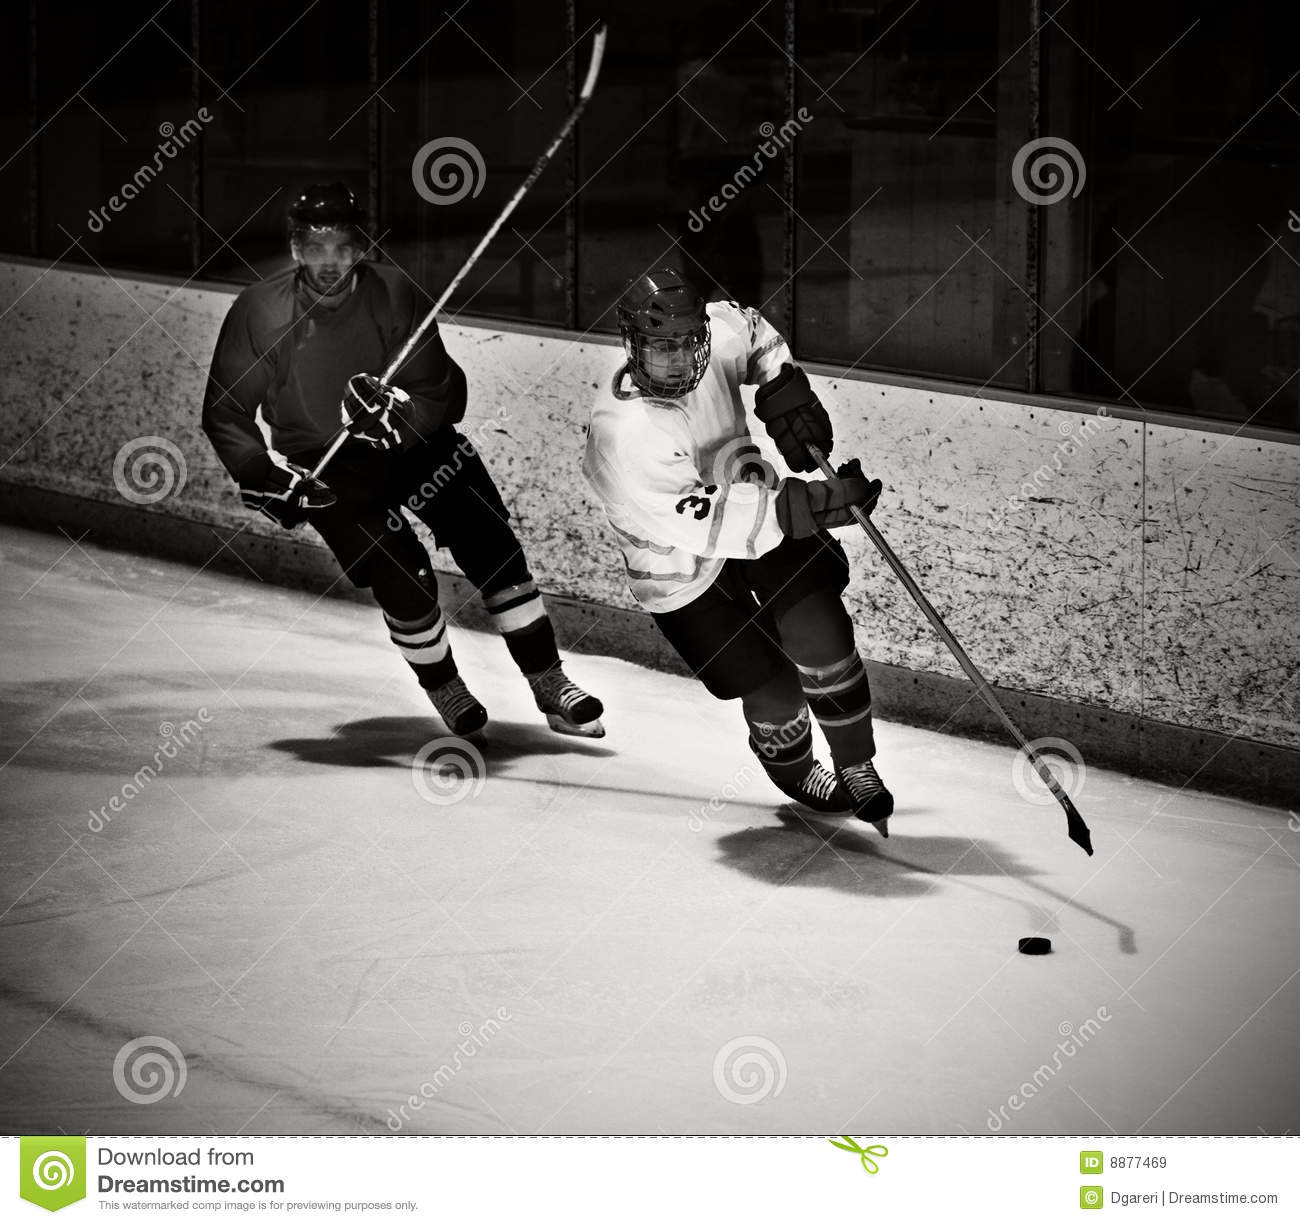 hockey player diagram 2002 chevy 1500 radio wiring royalty free stock images image 8877469